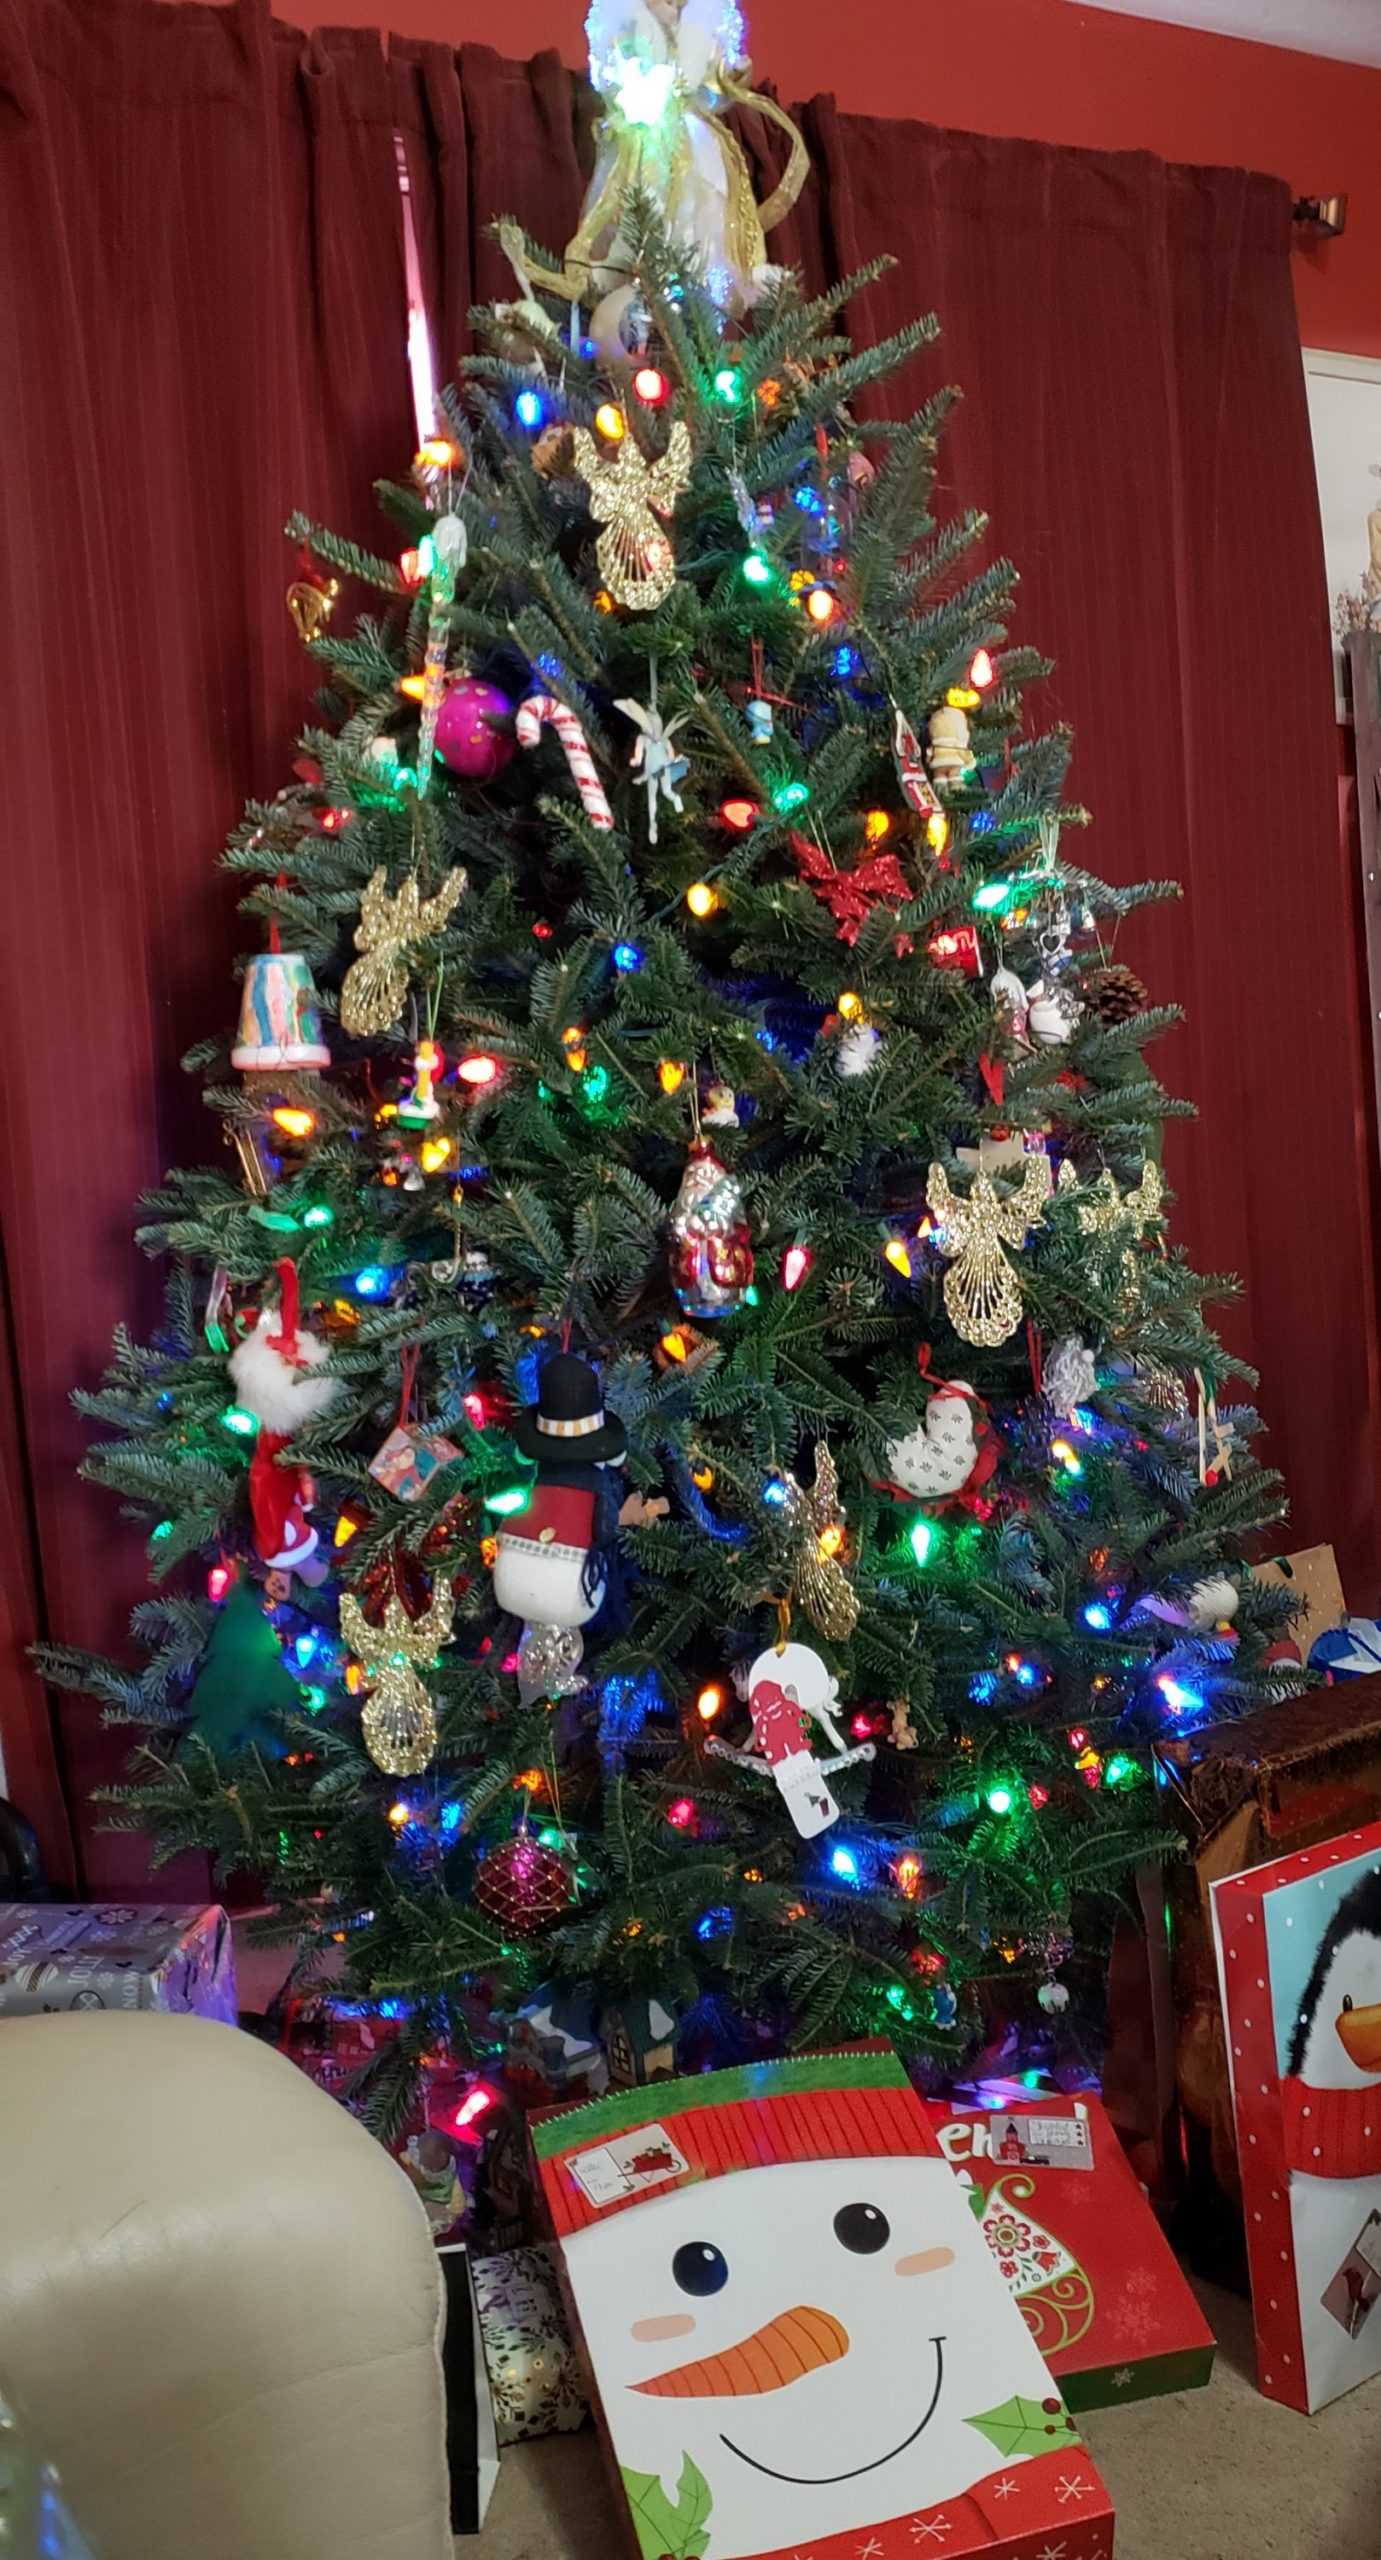 Pic of Christmas tree with gifts